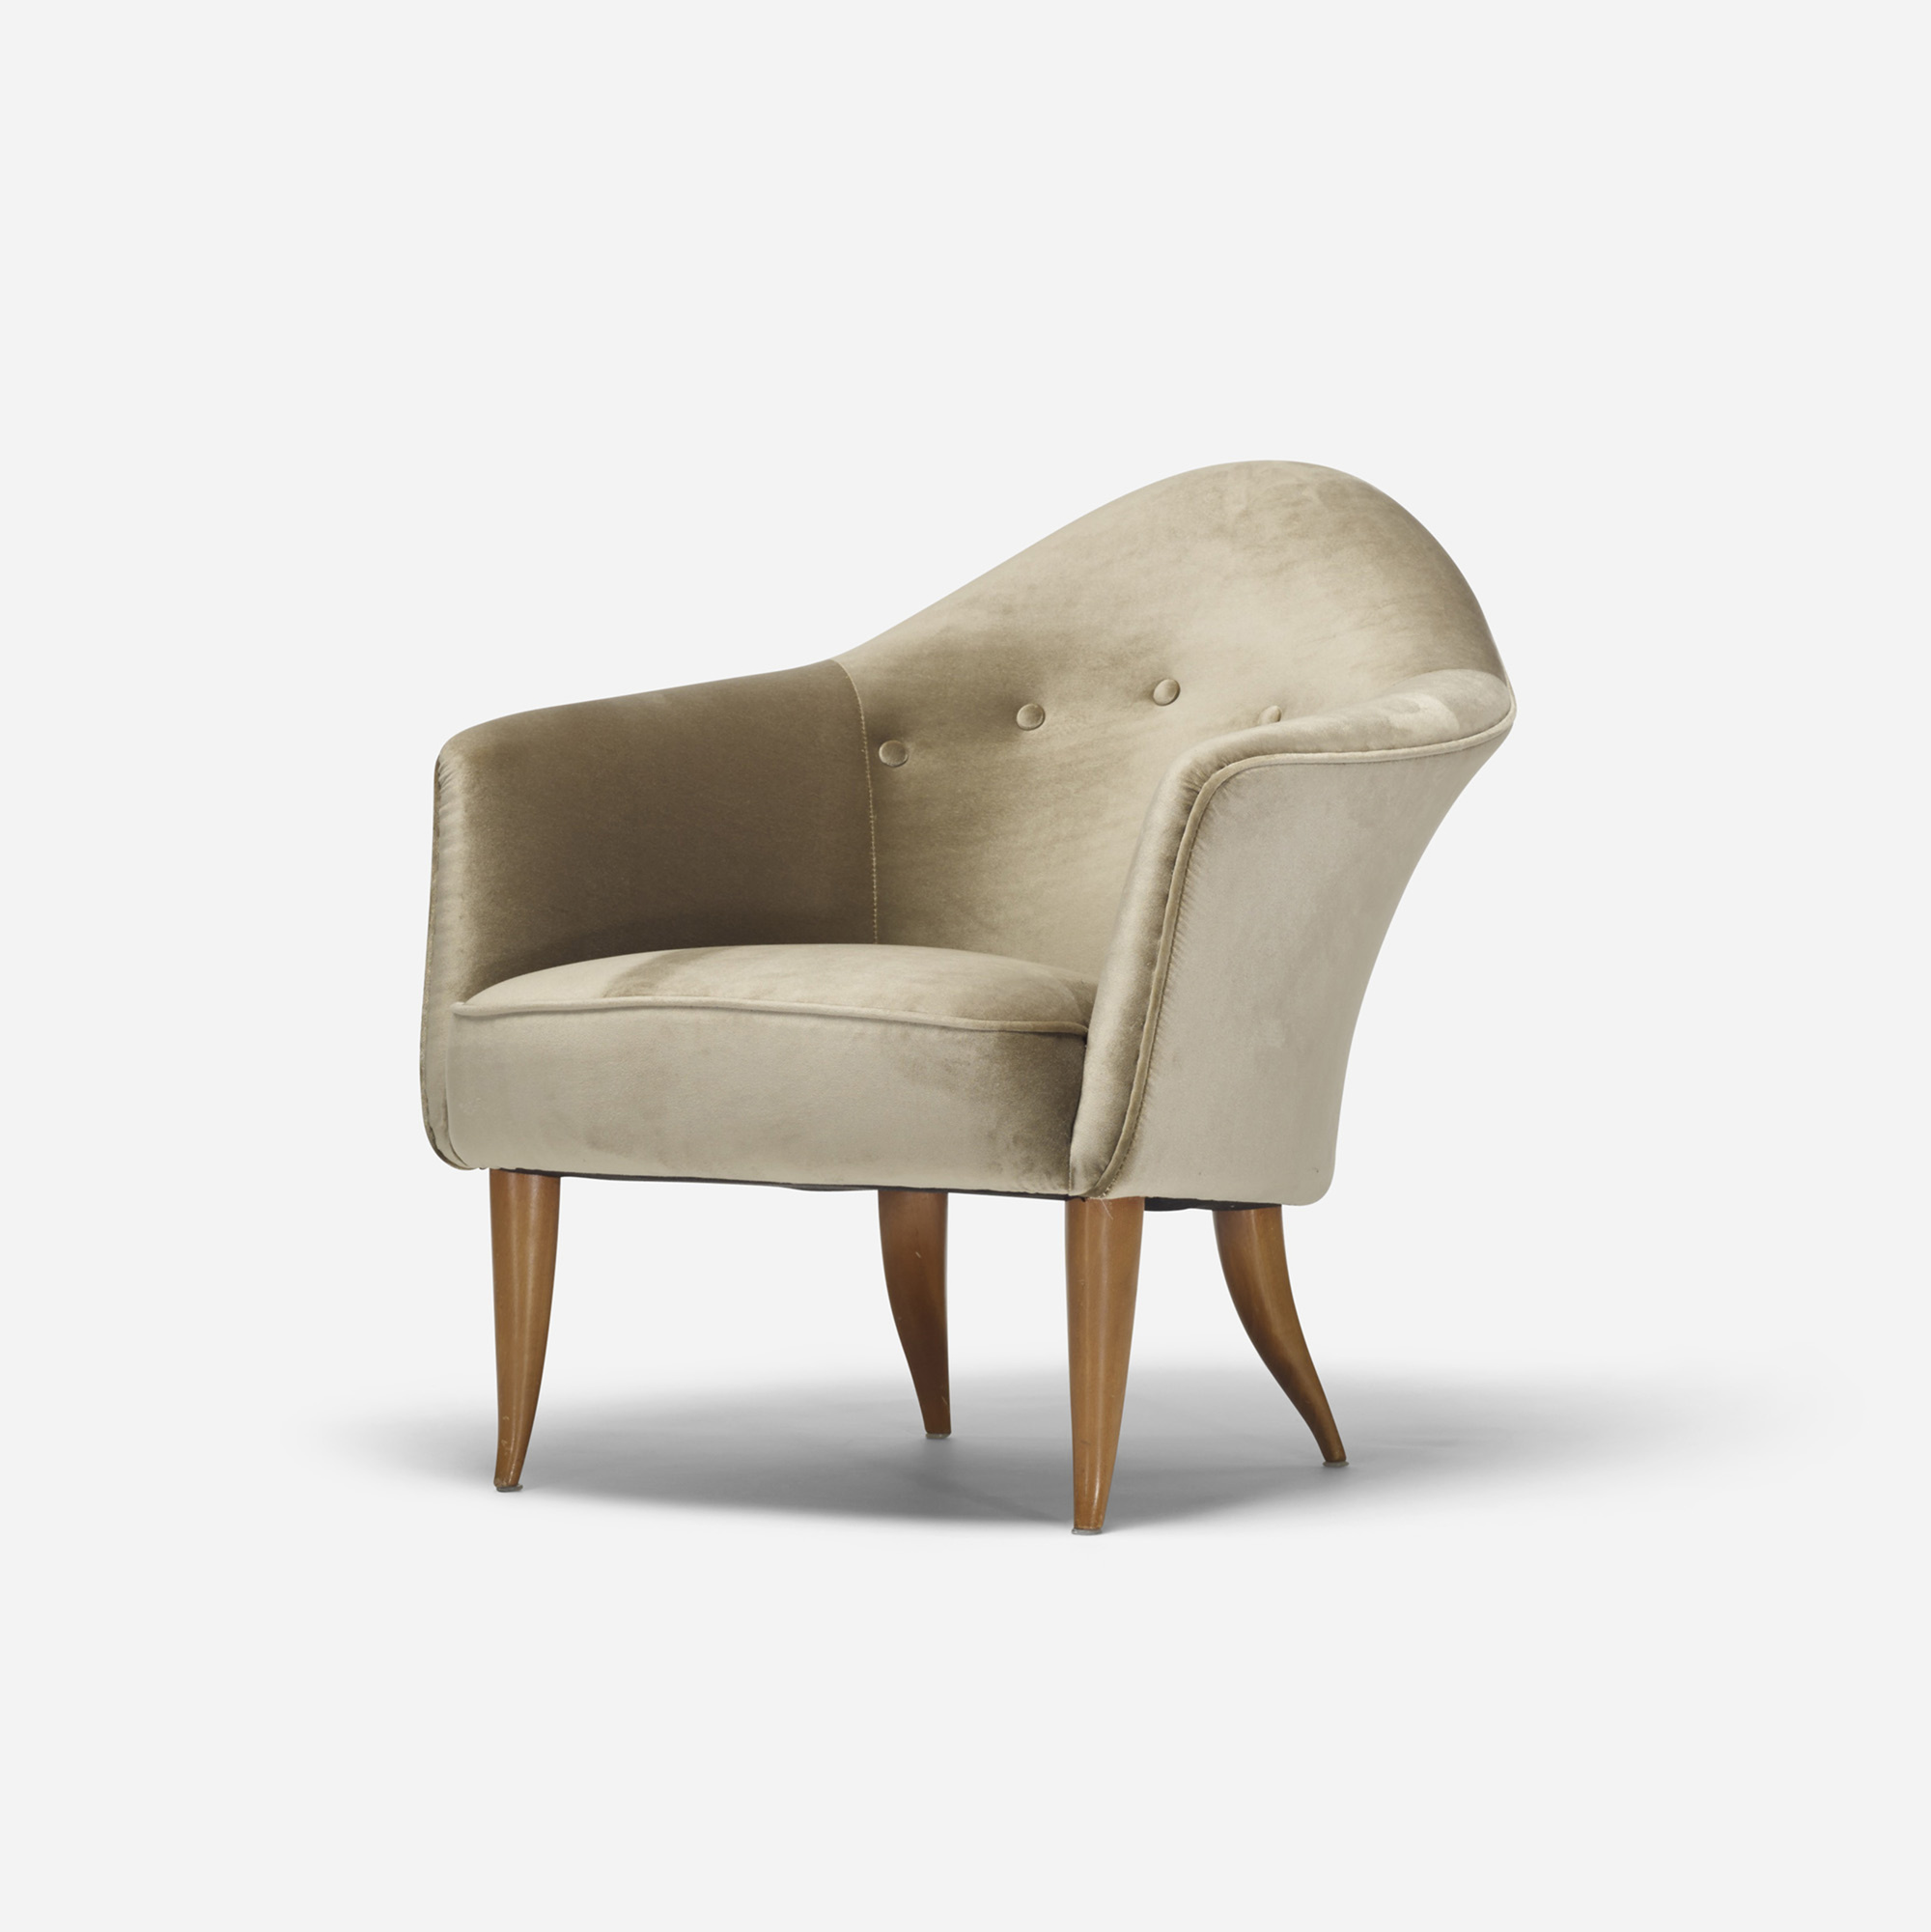 360: Kerstin Horlin-Holmquist / Little Adam lounge chair (1 of 4)